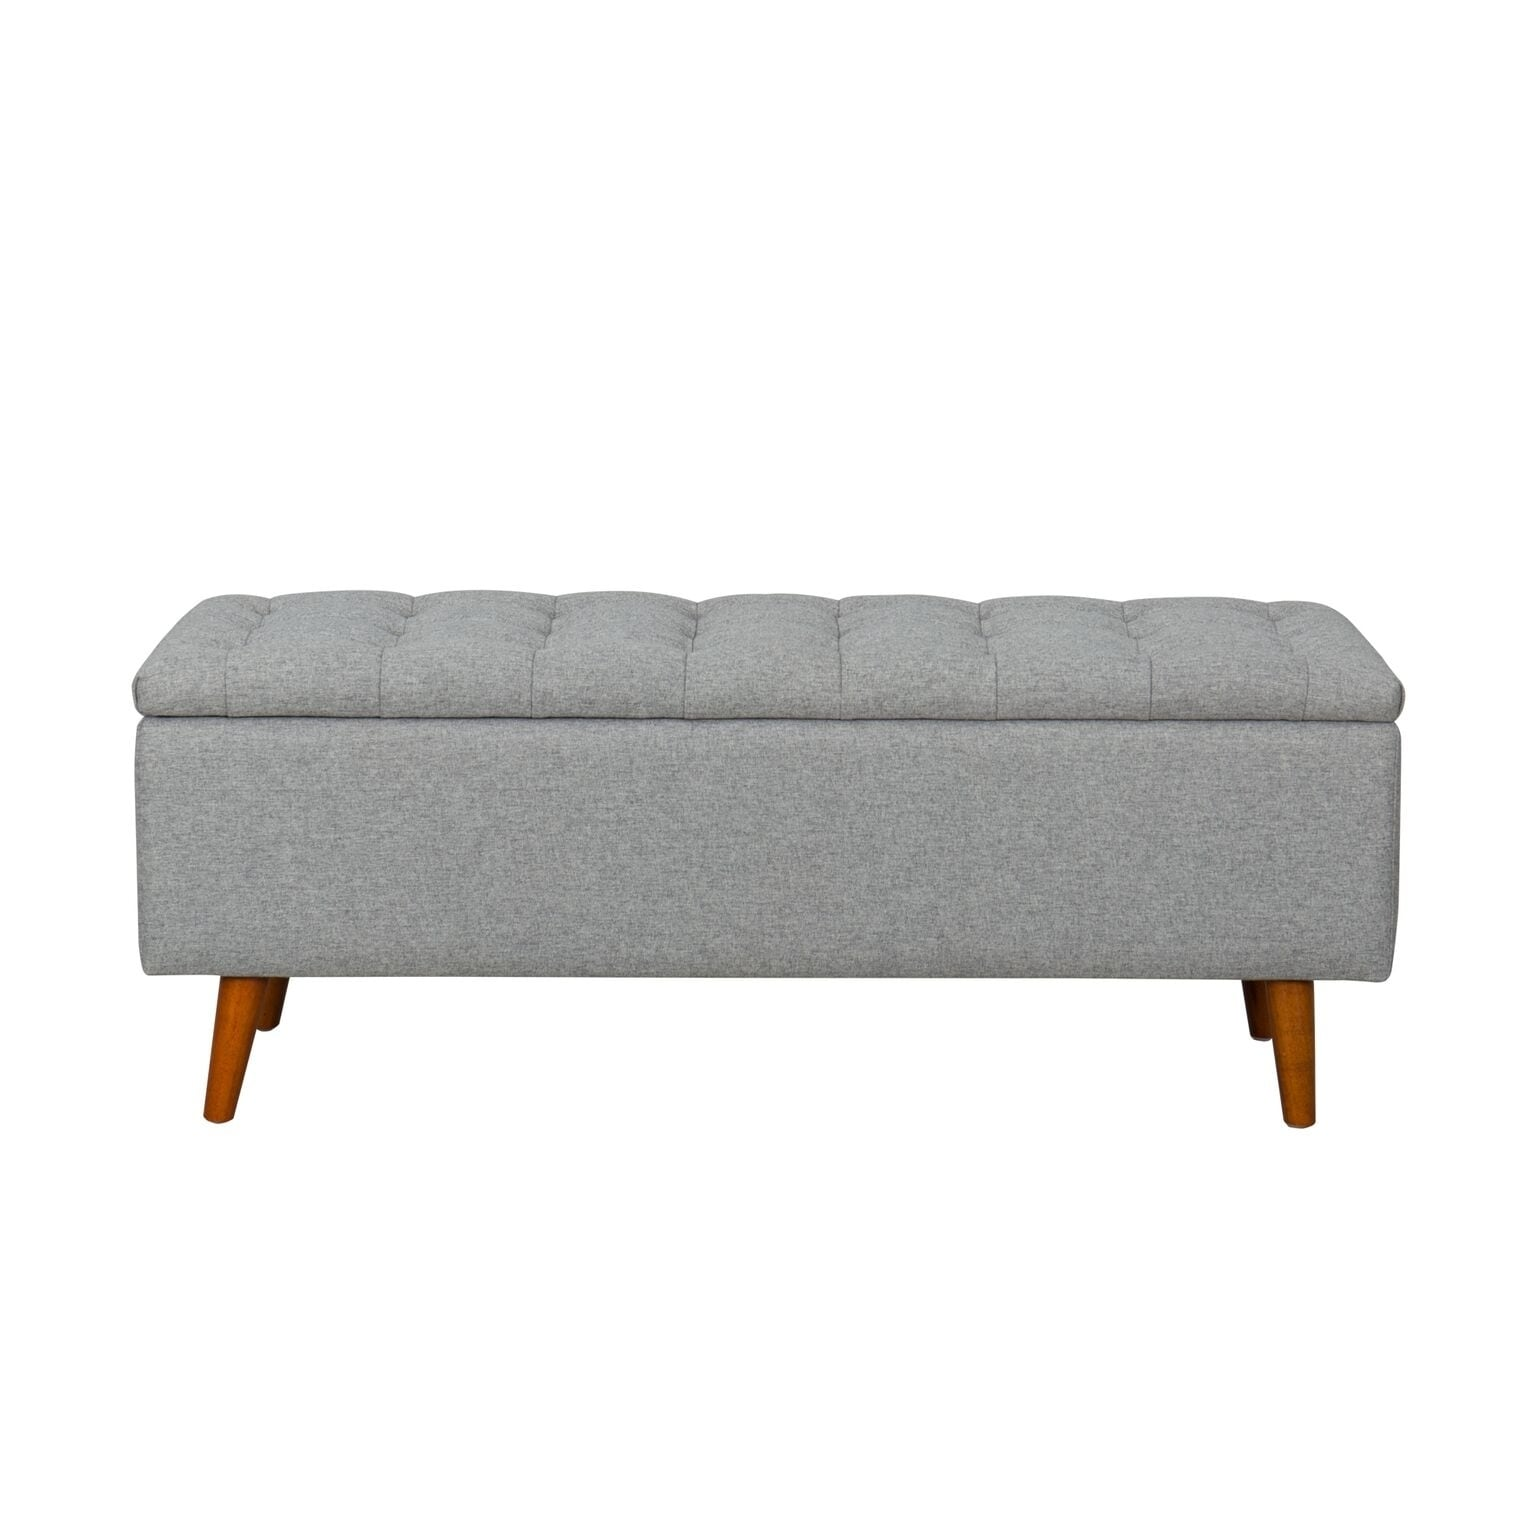 Chaise Martin Ikea Buy Carson Carrington Online At Overstock Our Best Living Room